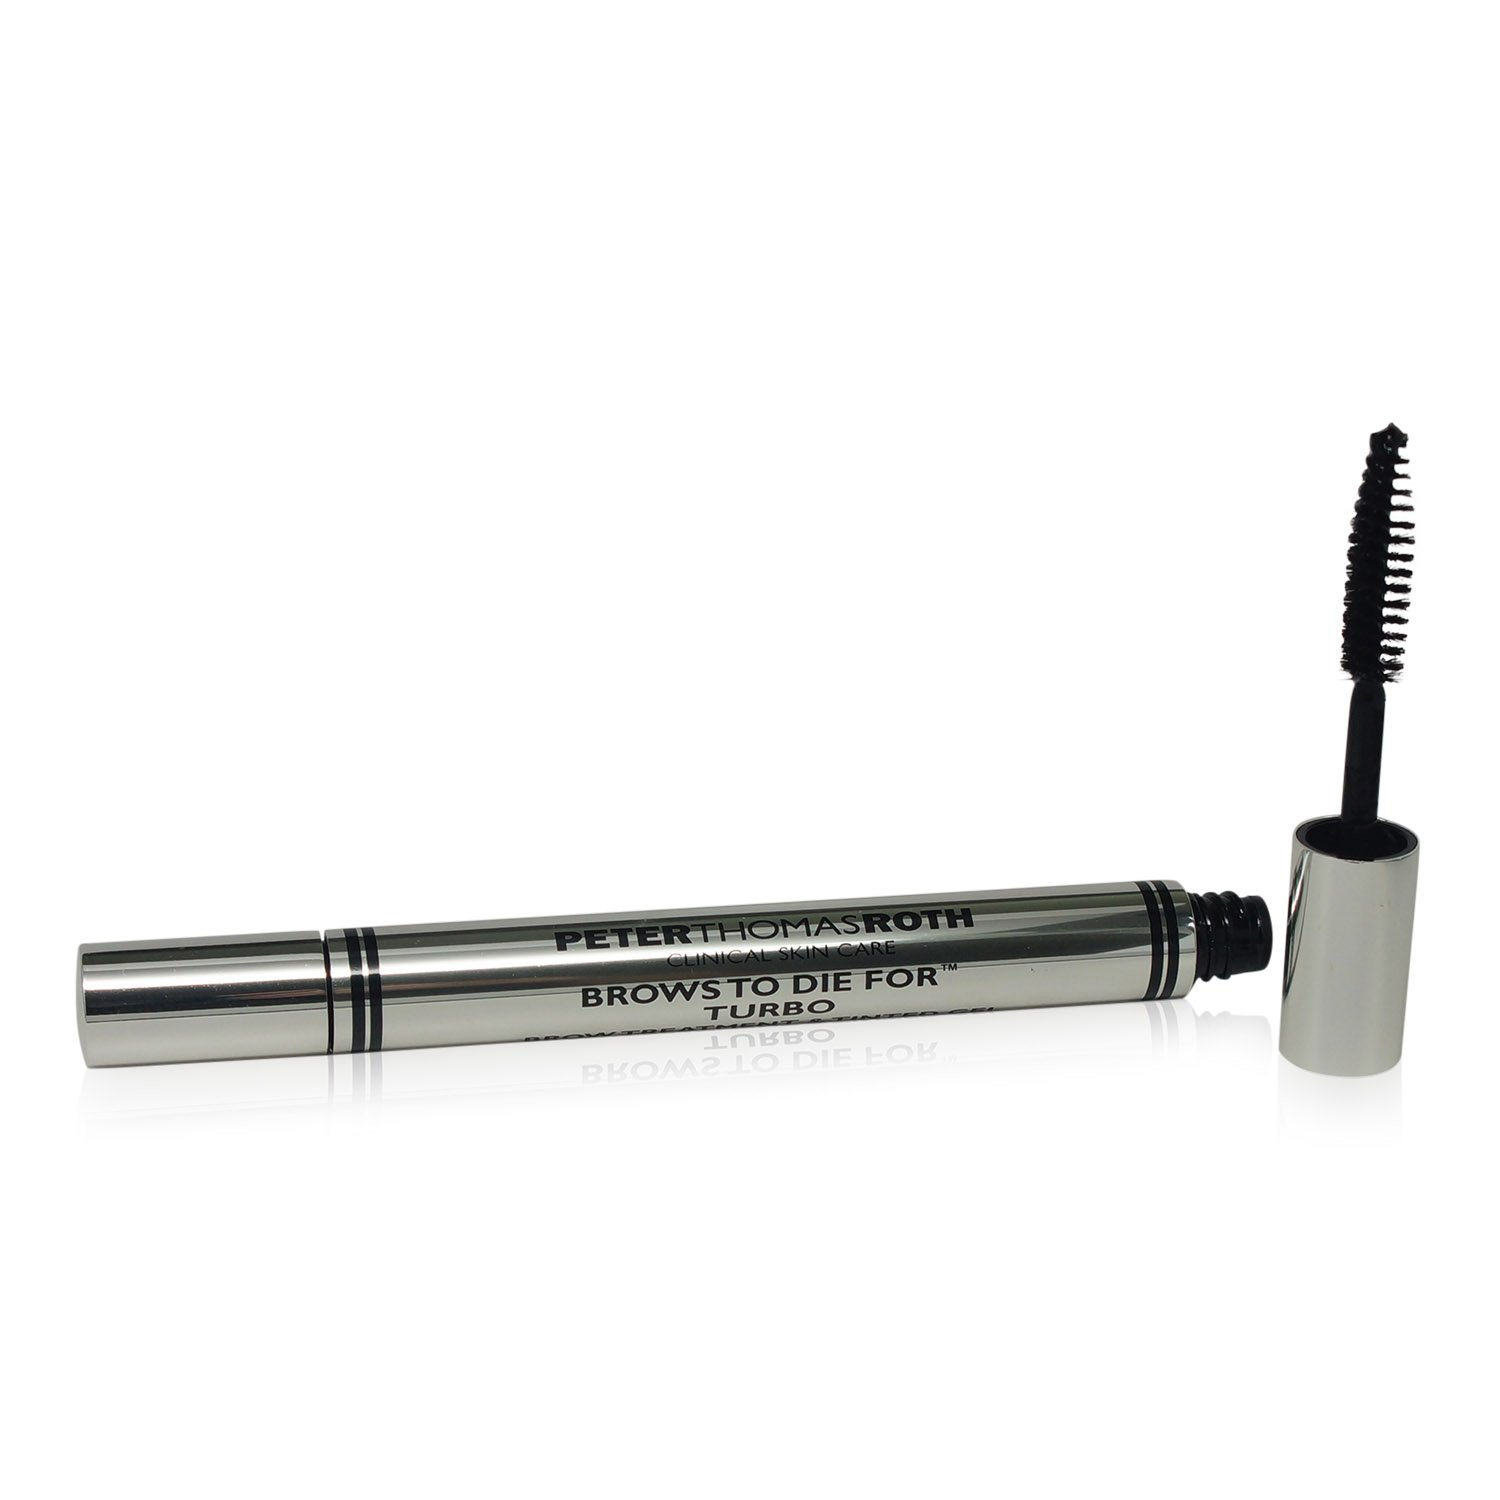 Amazon.com : Peter Thomas Roth - Brows To Die For Turbo 4.5 ml tube : Beauty